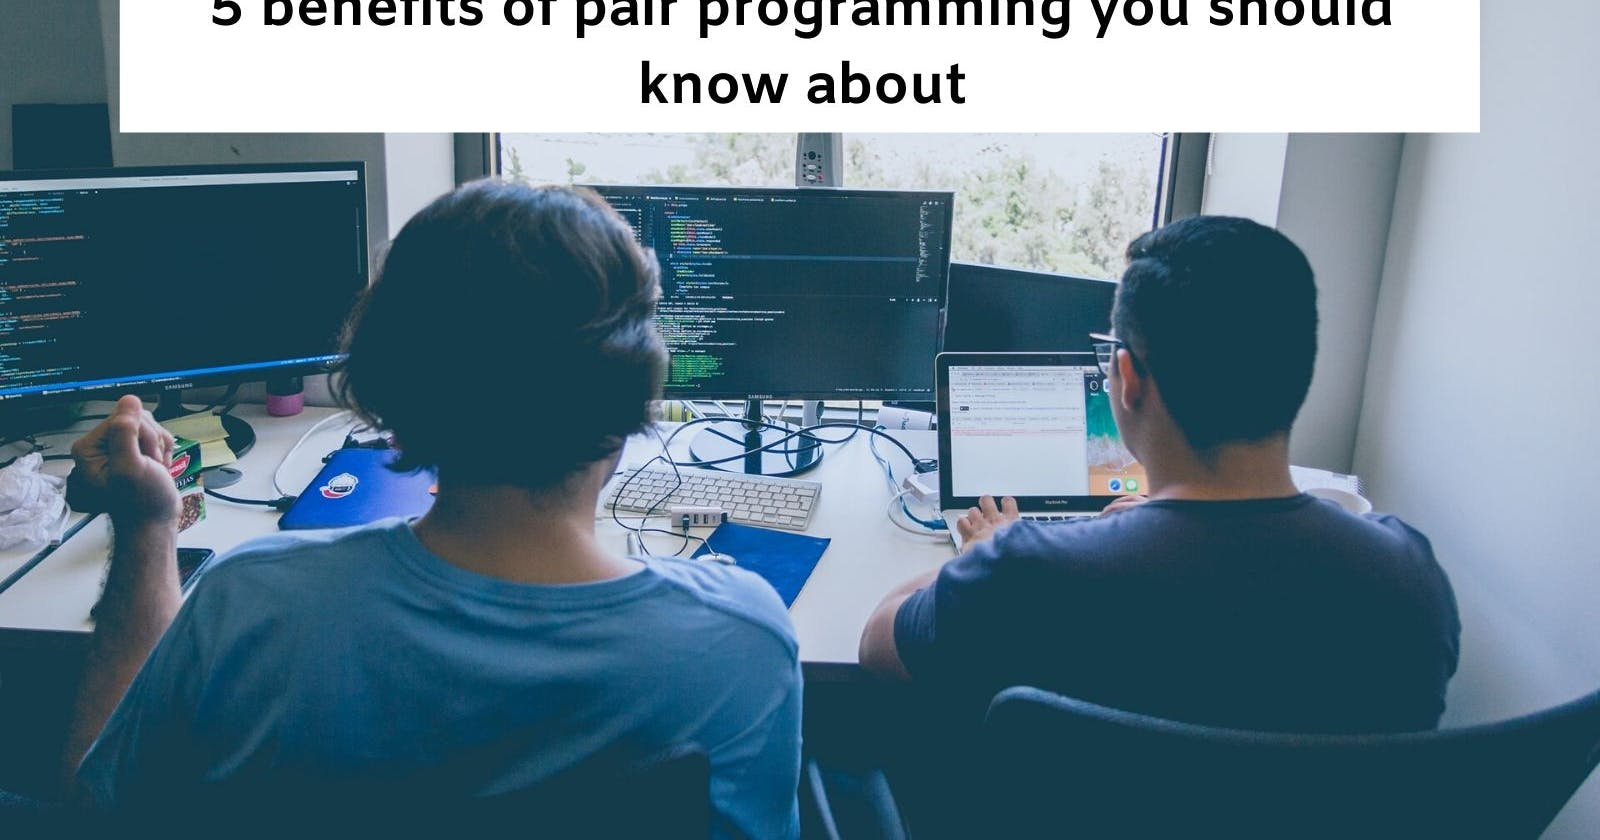 5 benefits of pair programming you should know about